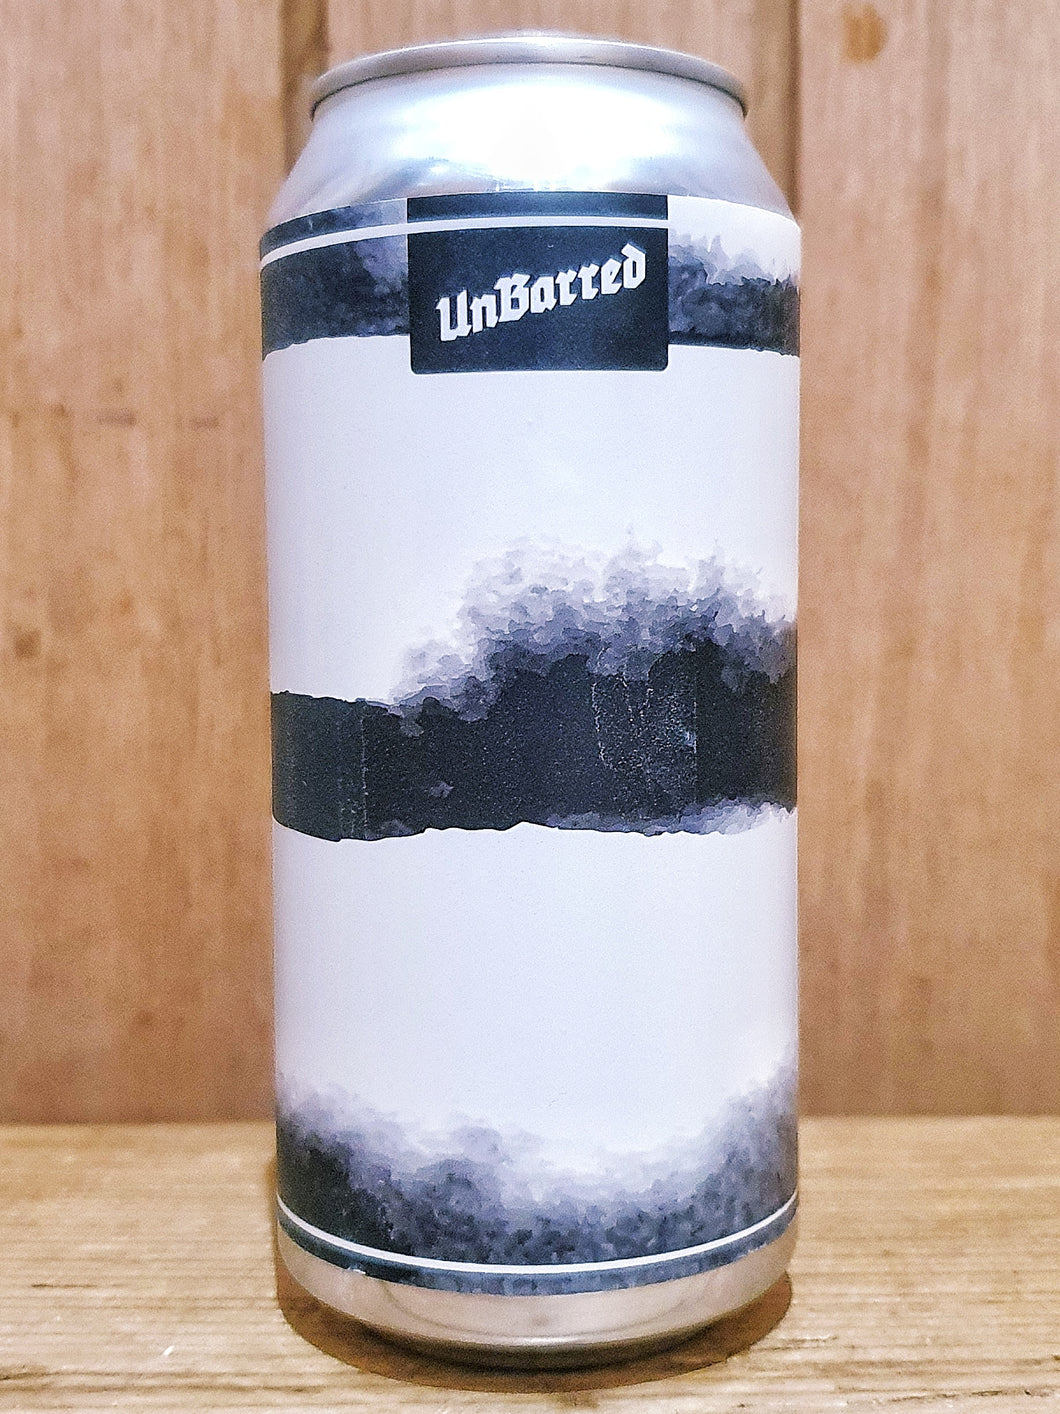 Unbarred - NEIPA #2